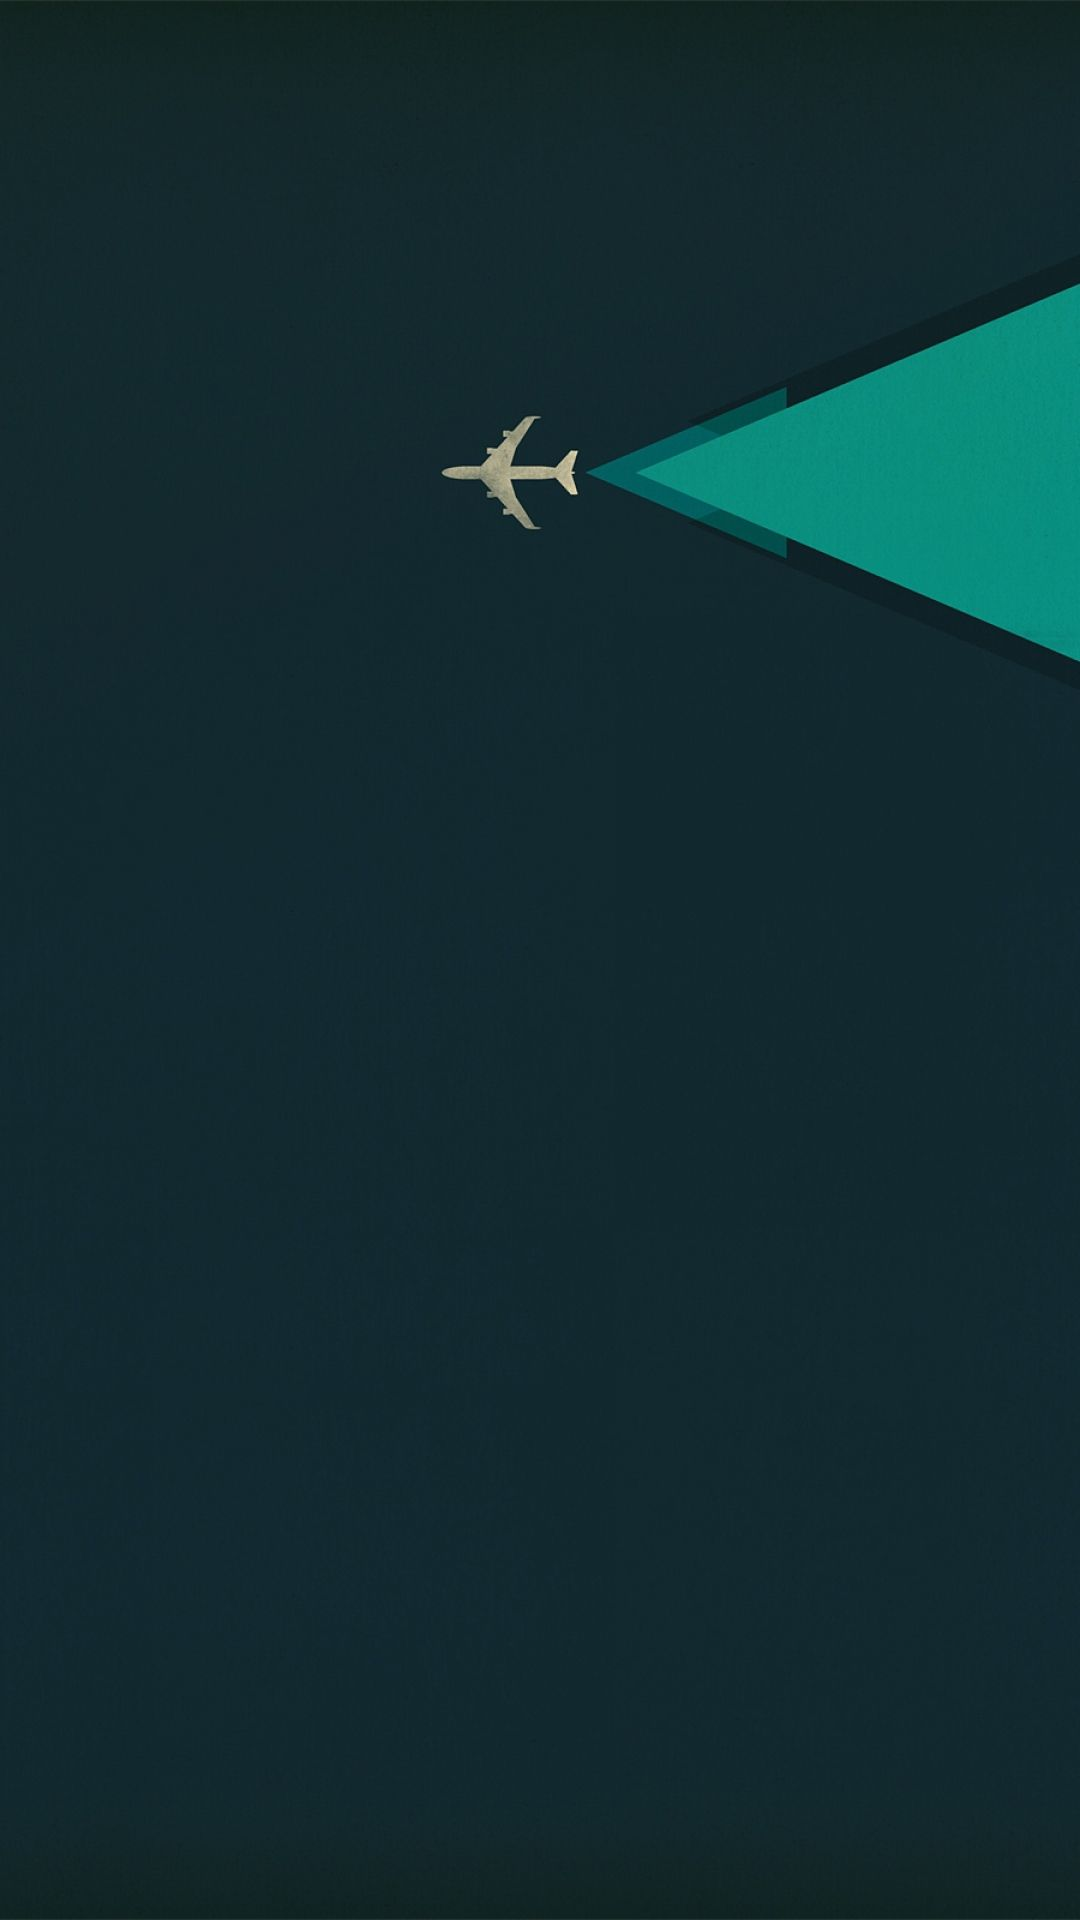 Plane tap to see more nice minimalist iphone wallpapers - Aeroplane hd wallpapers for mobile ...